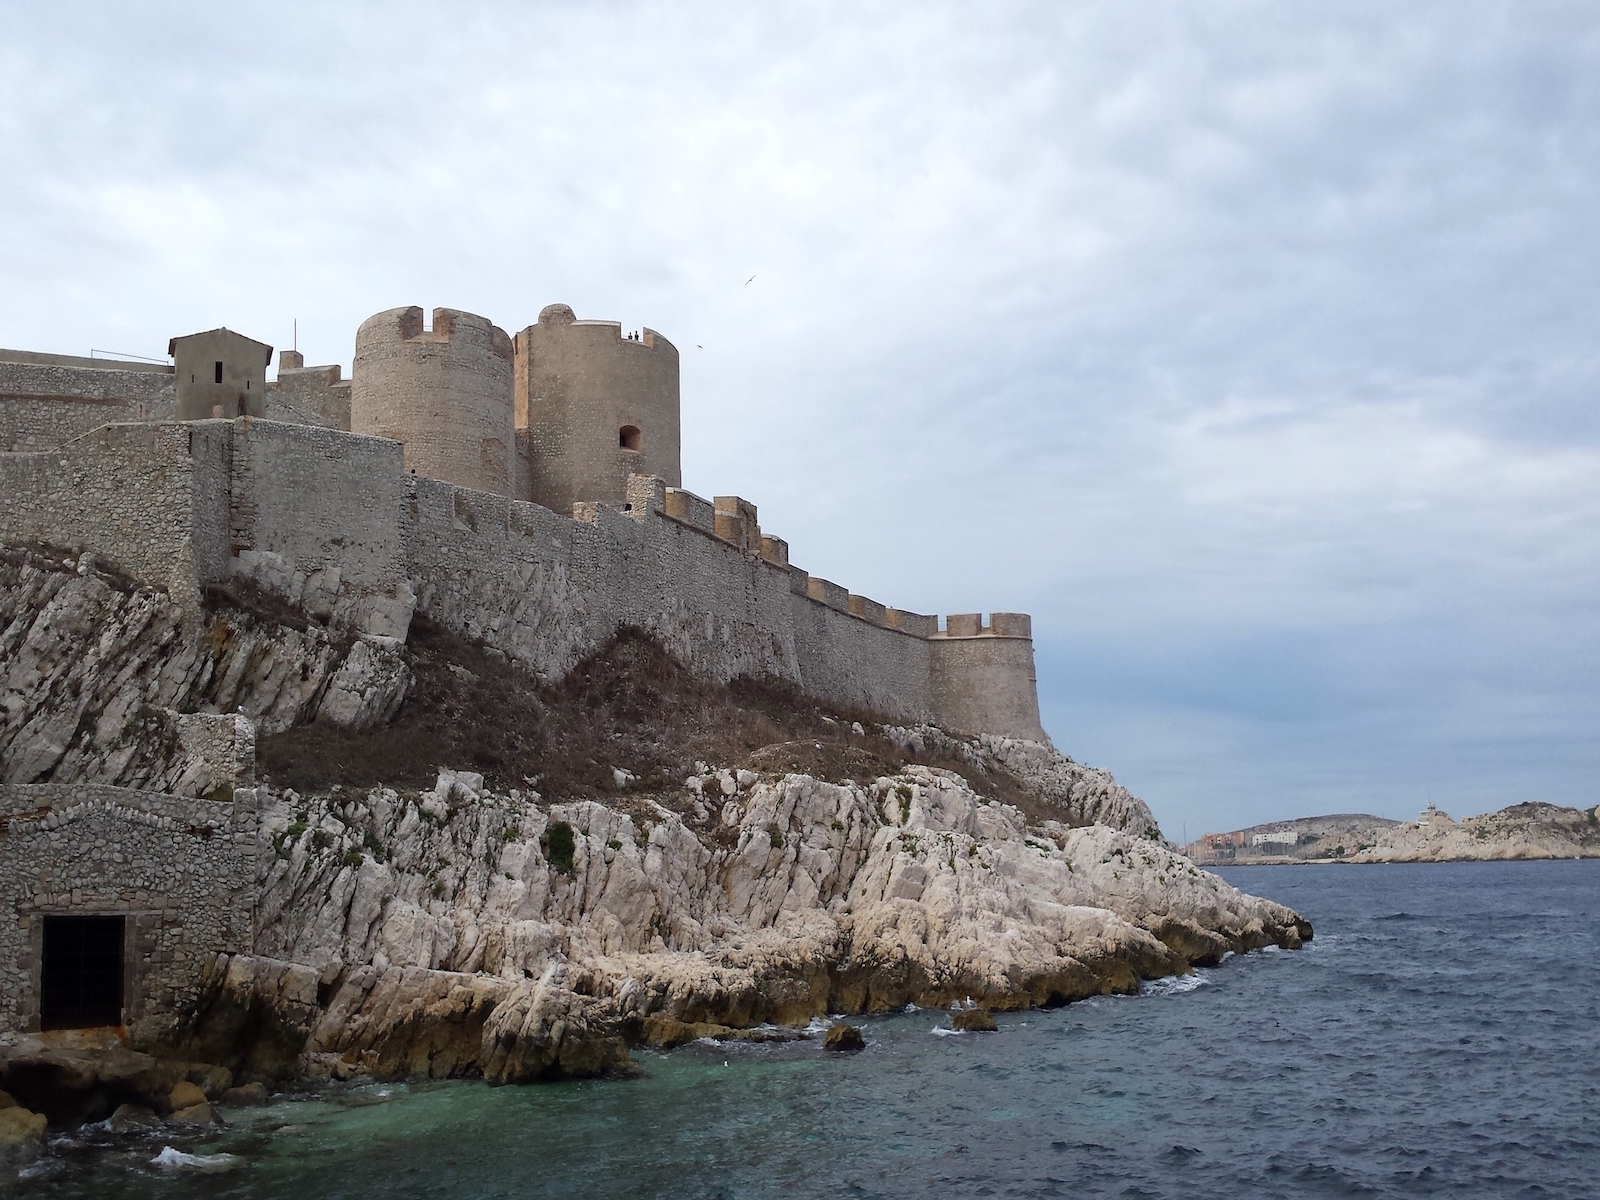 marseille-chateau-dif-prison-france-tourameo